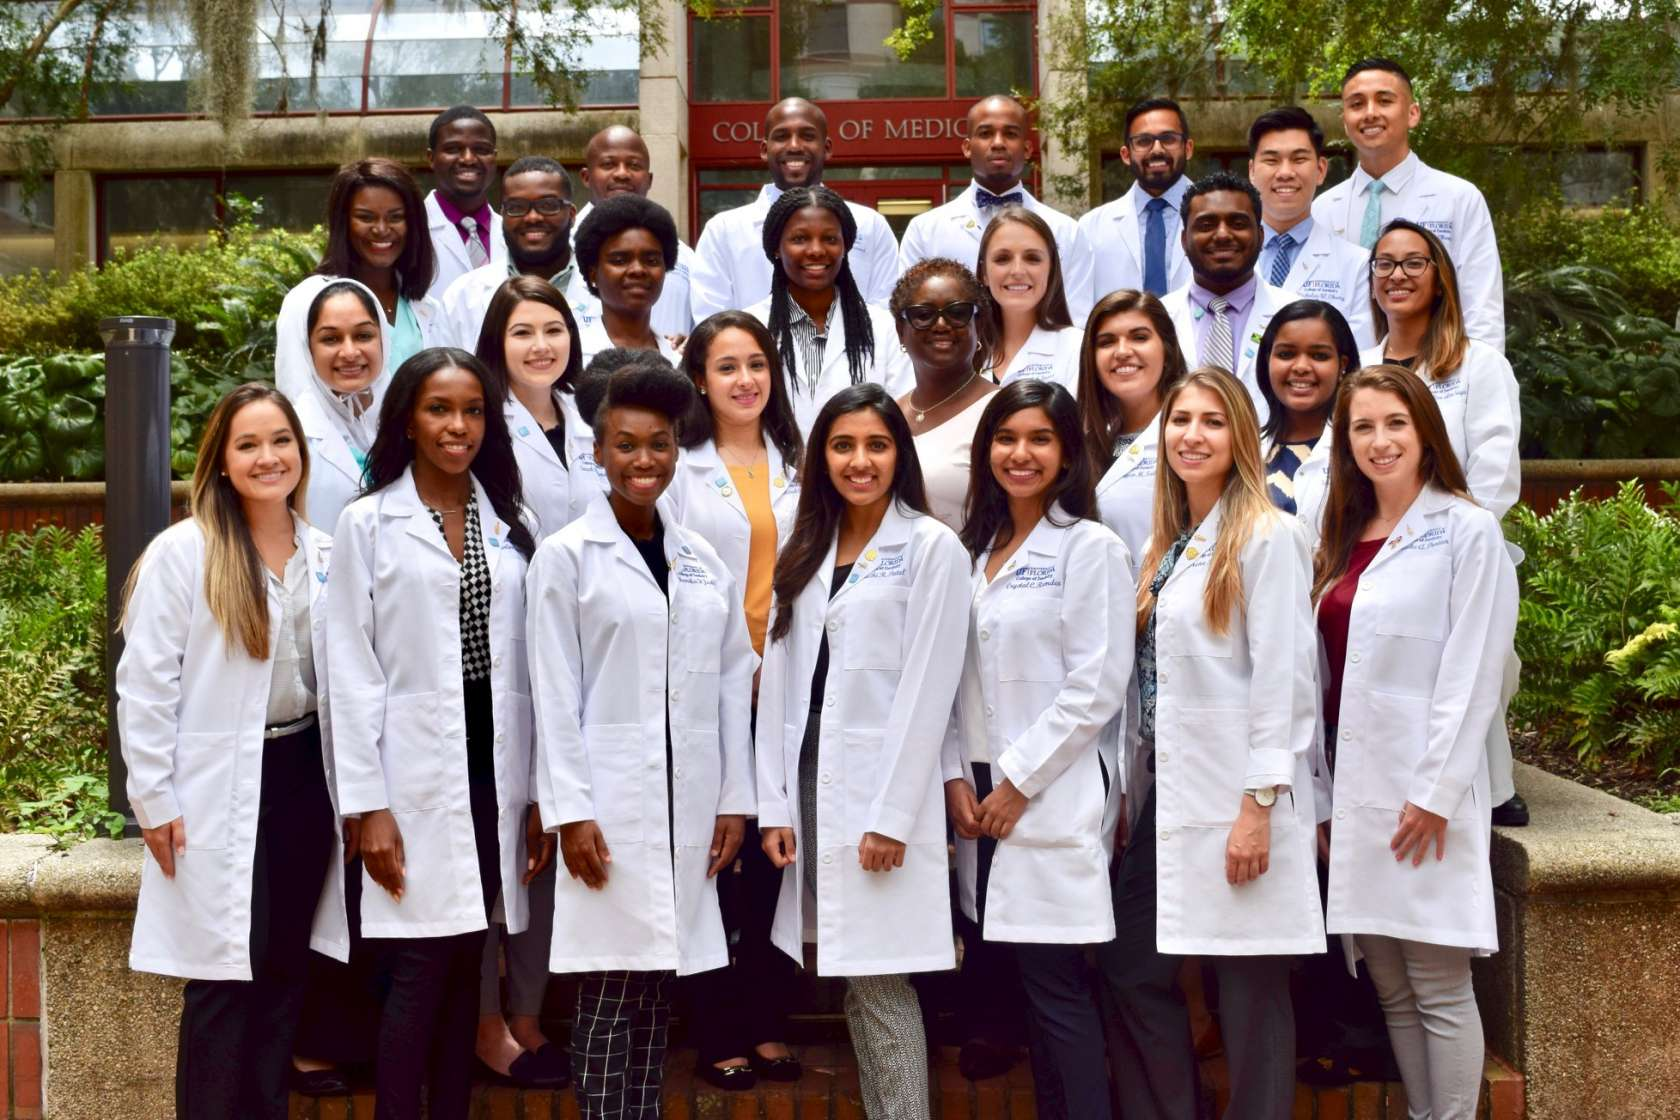 The UF Student National Dental Association's goal is to promote, aid and support the academic and social environment of minority students at the college.